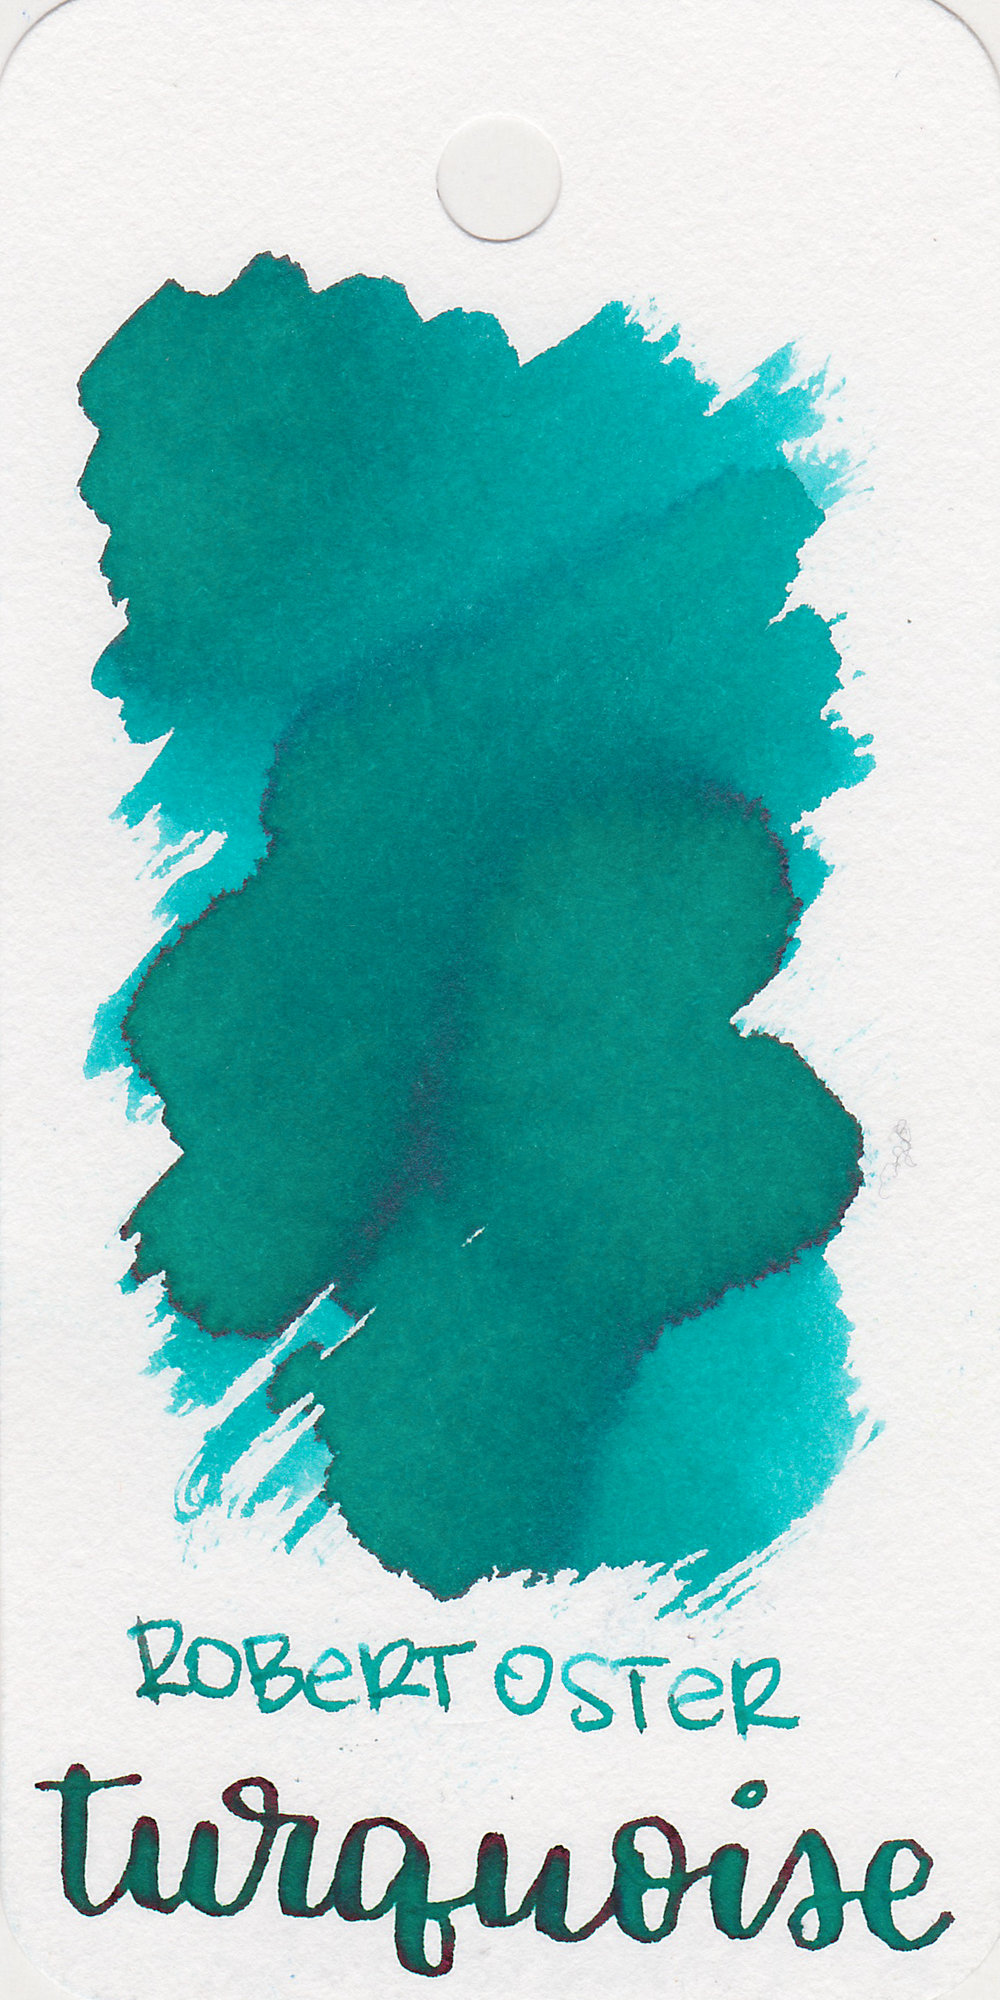 The color: - Turquoise is a medium blue-green.